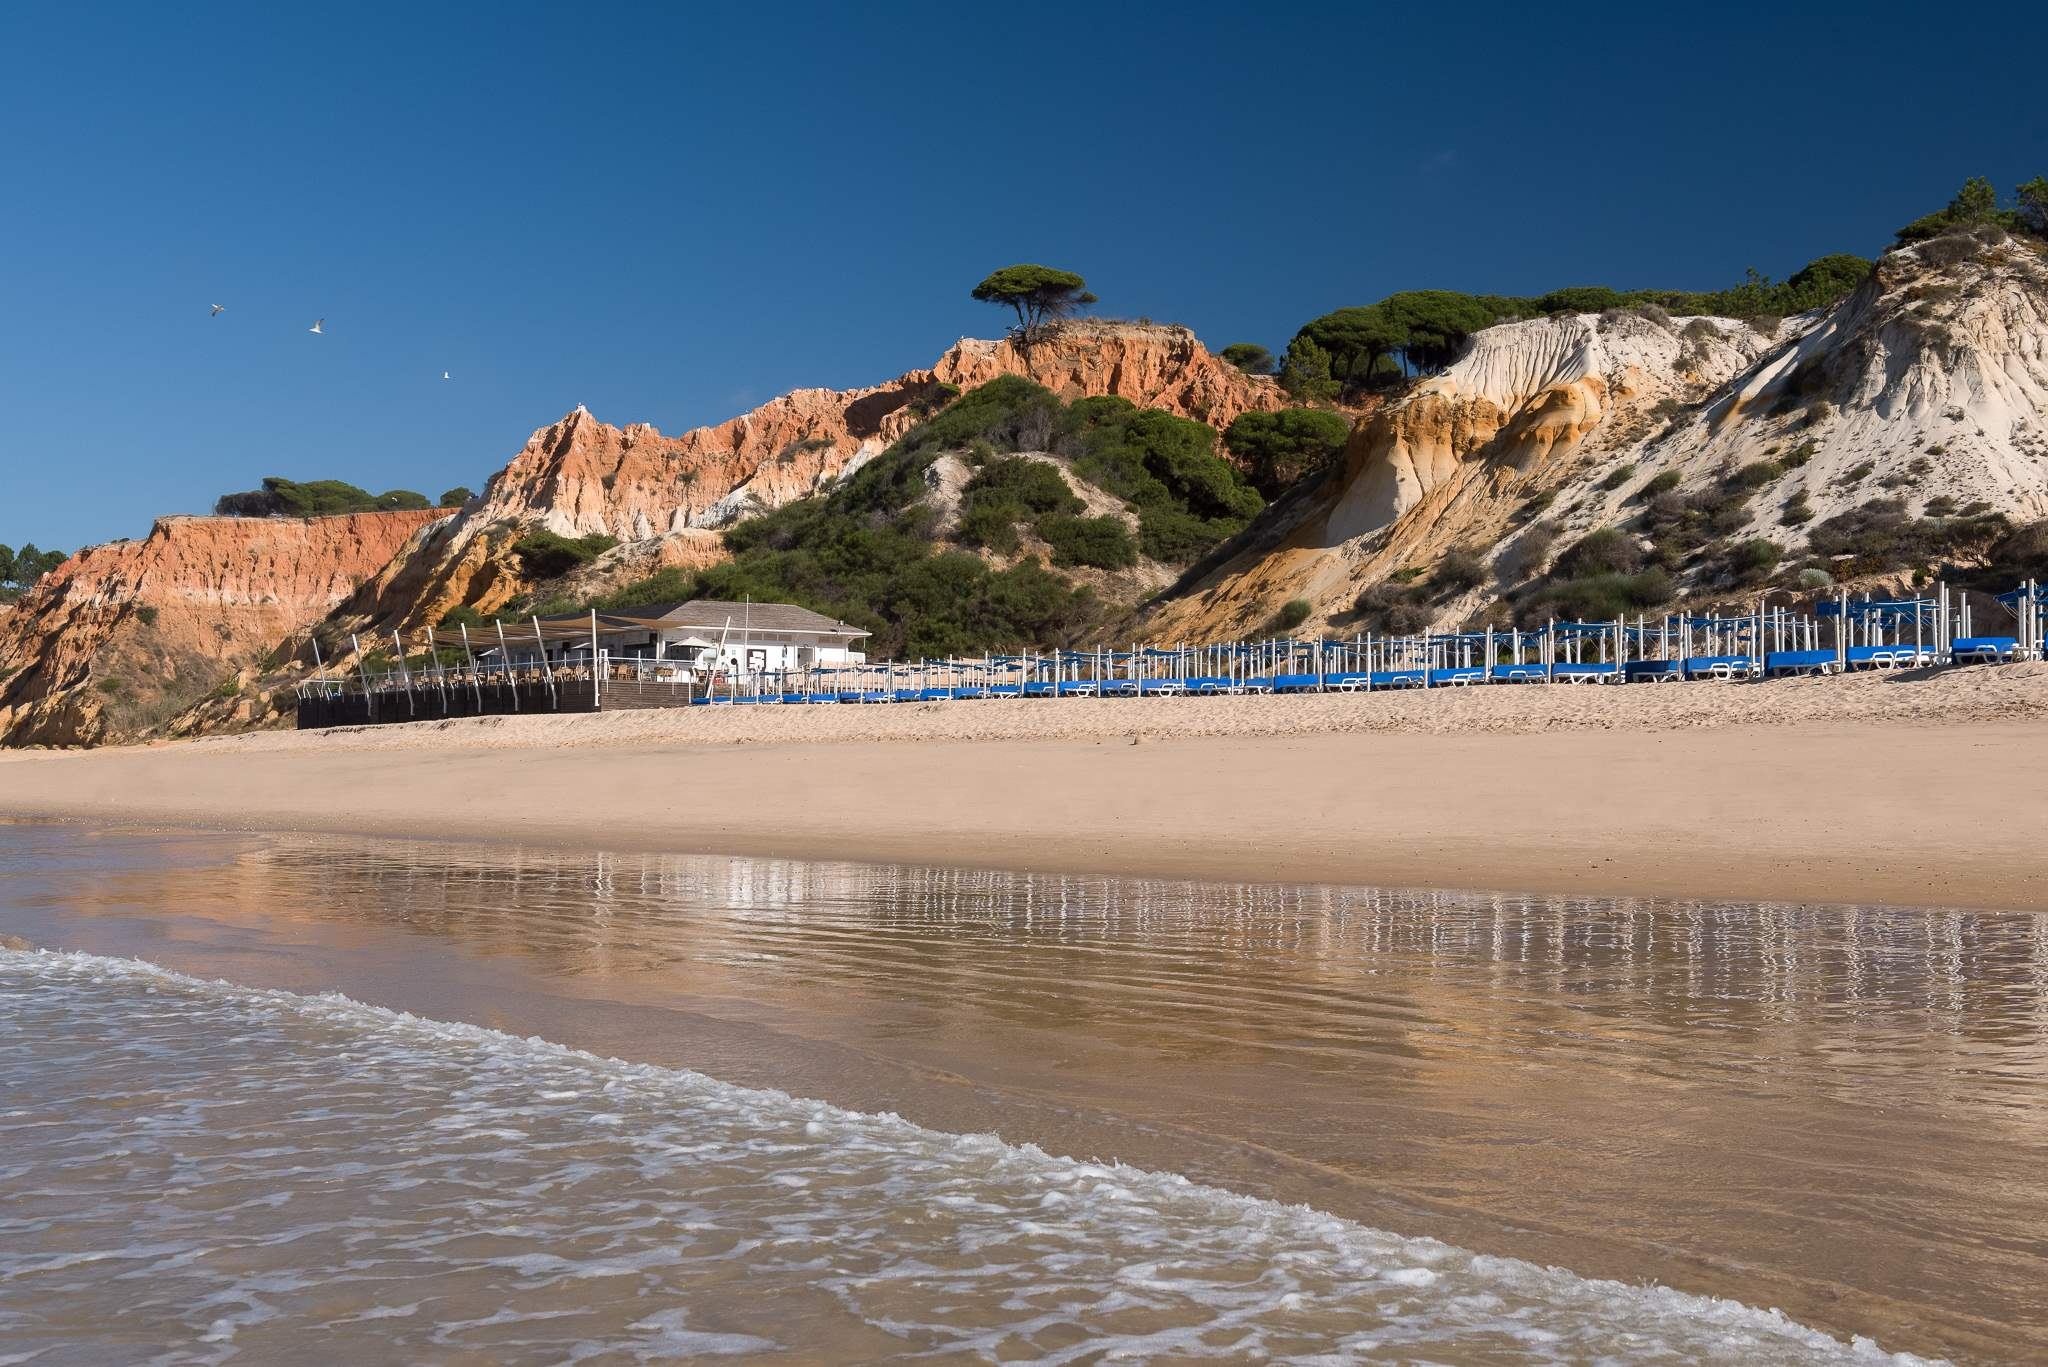 Pine Cliffs Villa Falesia, 4 bedroom rate, main house, 4 bedroom villa in Pine Cliffs Resort, Algarve Photo #33